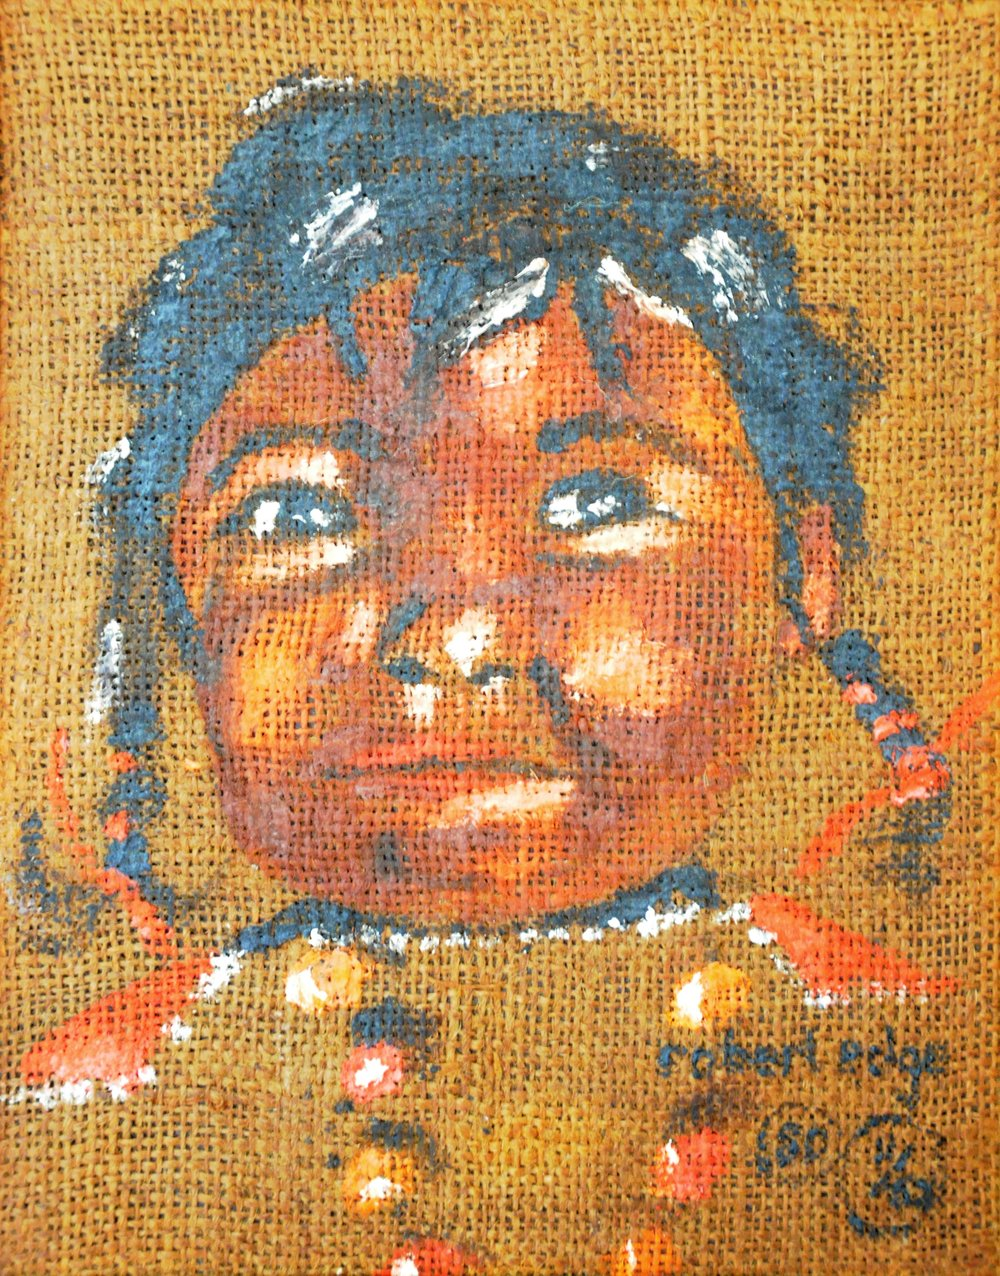 Untitled (Portrait of Child), 1980 (?), Robert Edge, acrylic on burlap